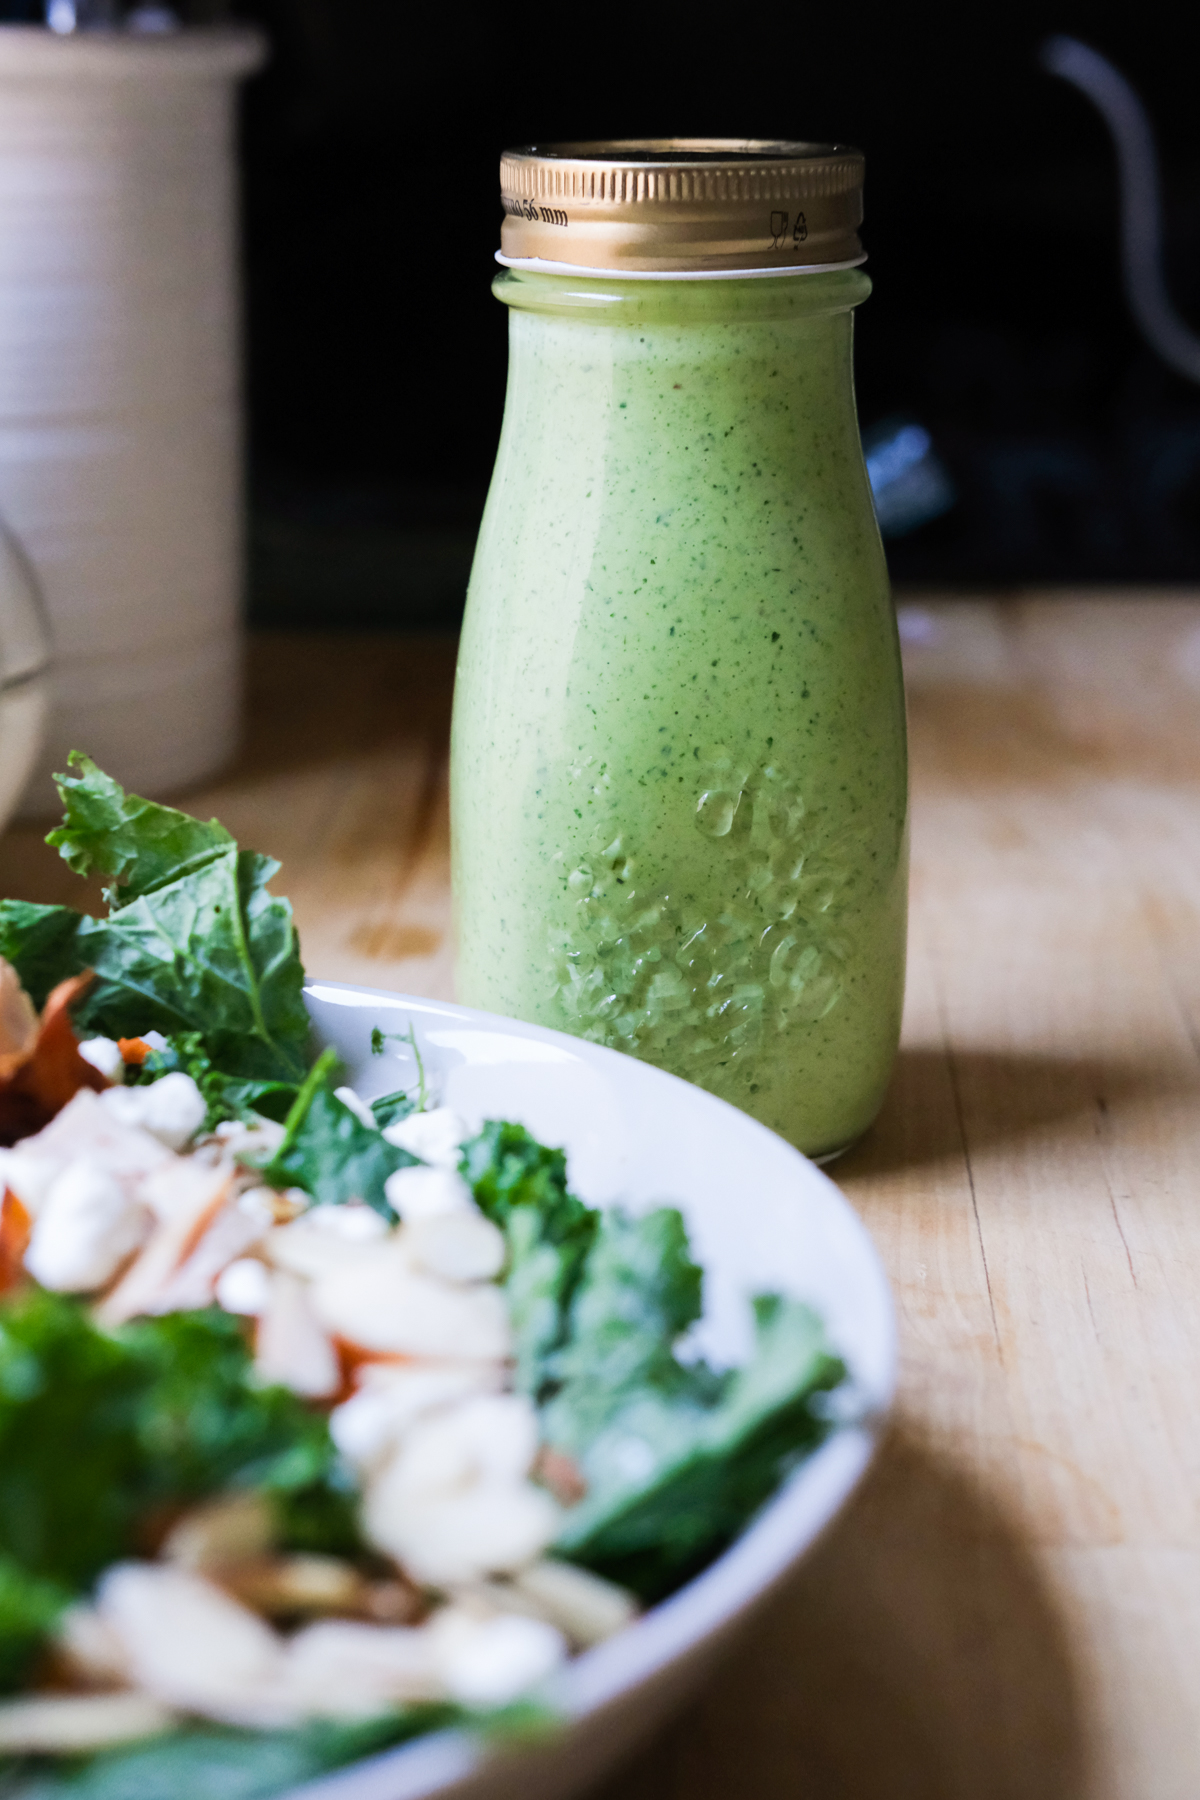 green goddess dressing in a bottle next to salad